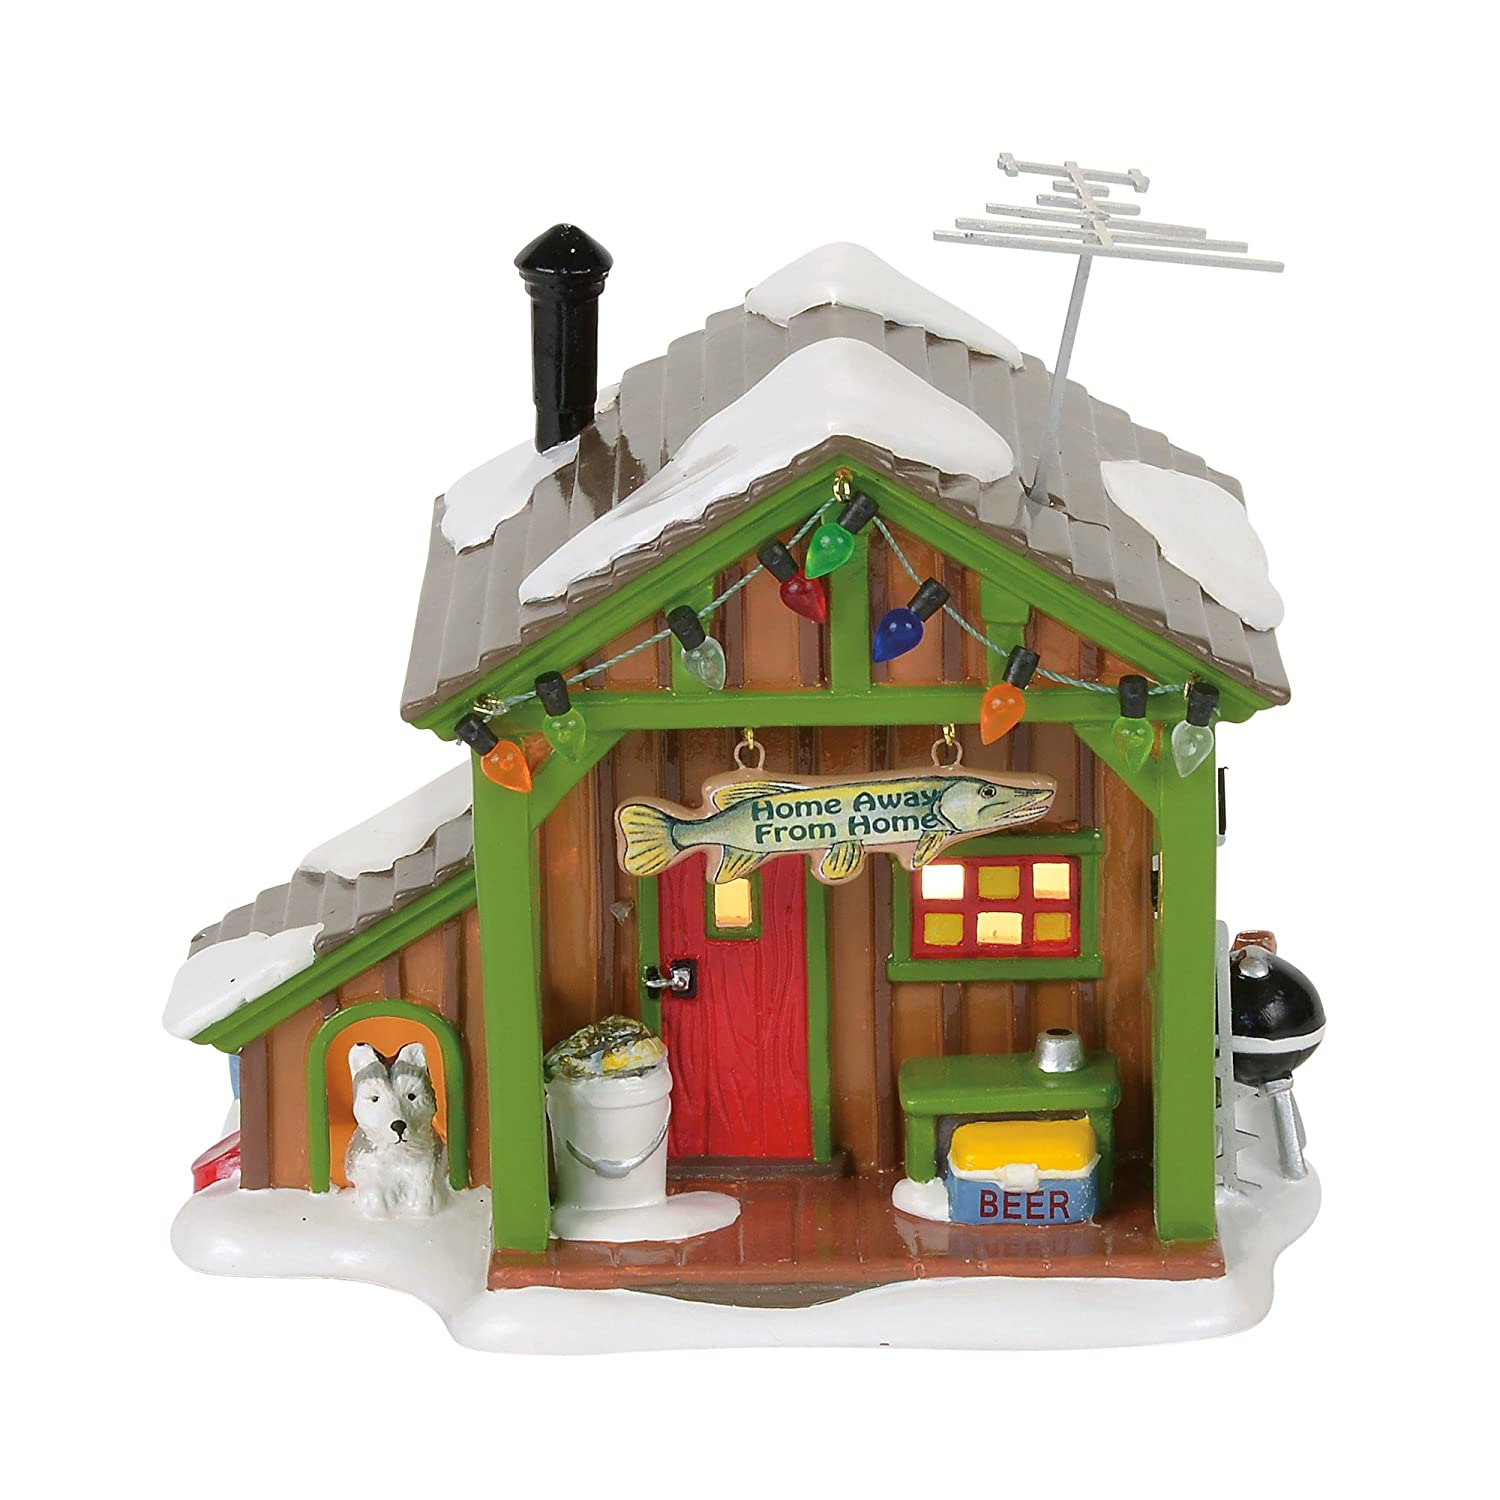 Department 56 Snow Away from Home Fish Shack Village Lit Building, Multicolor 4056685